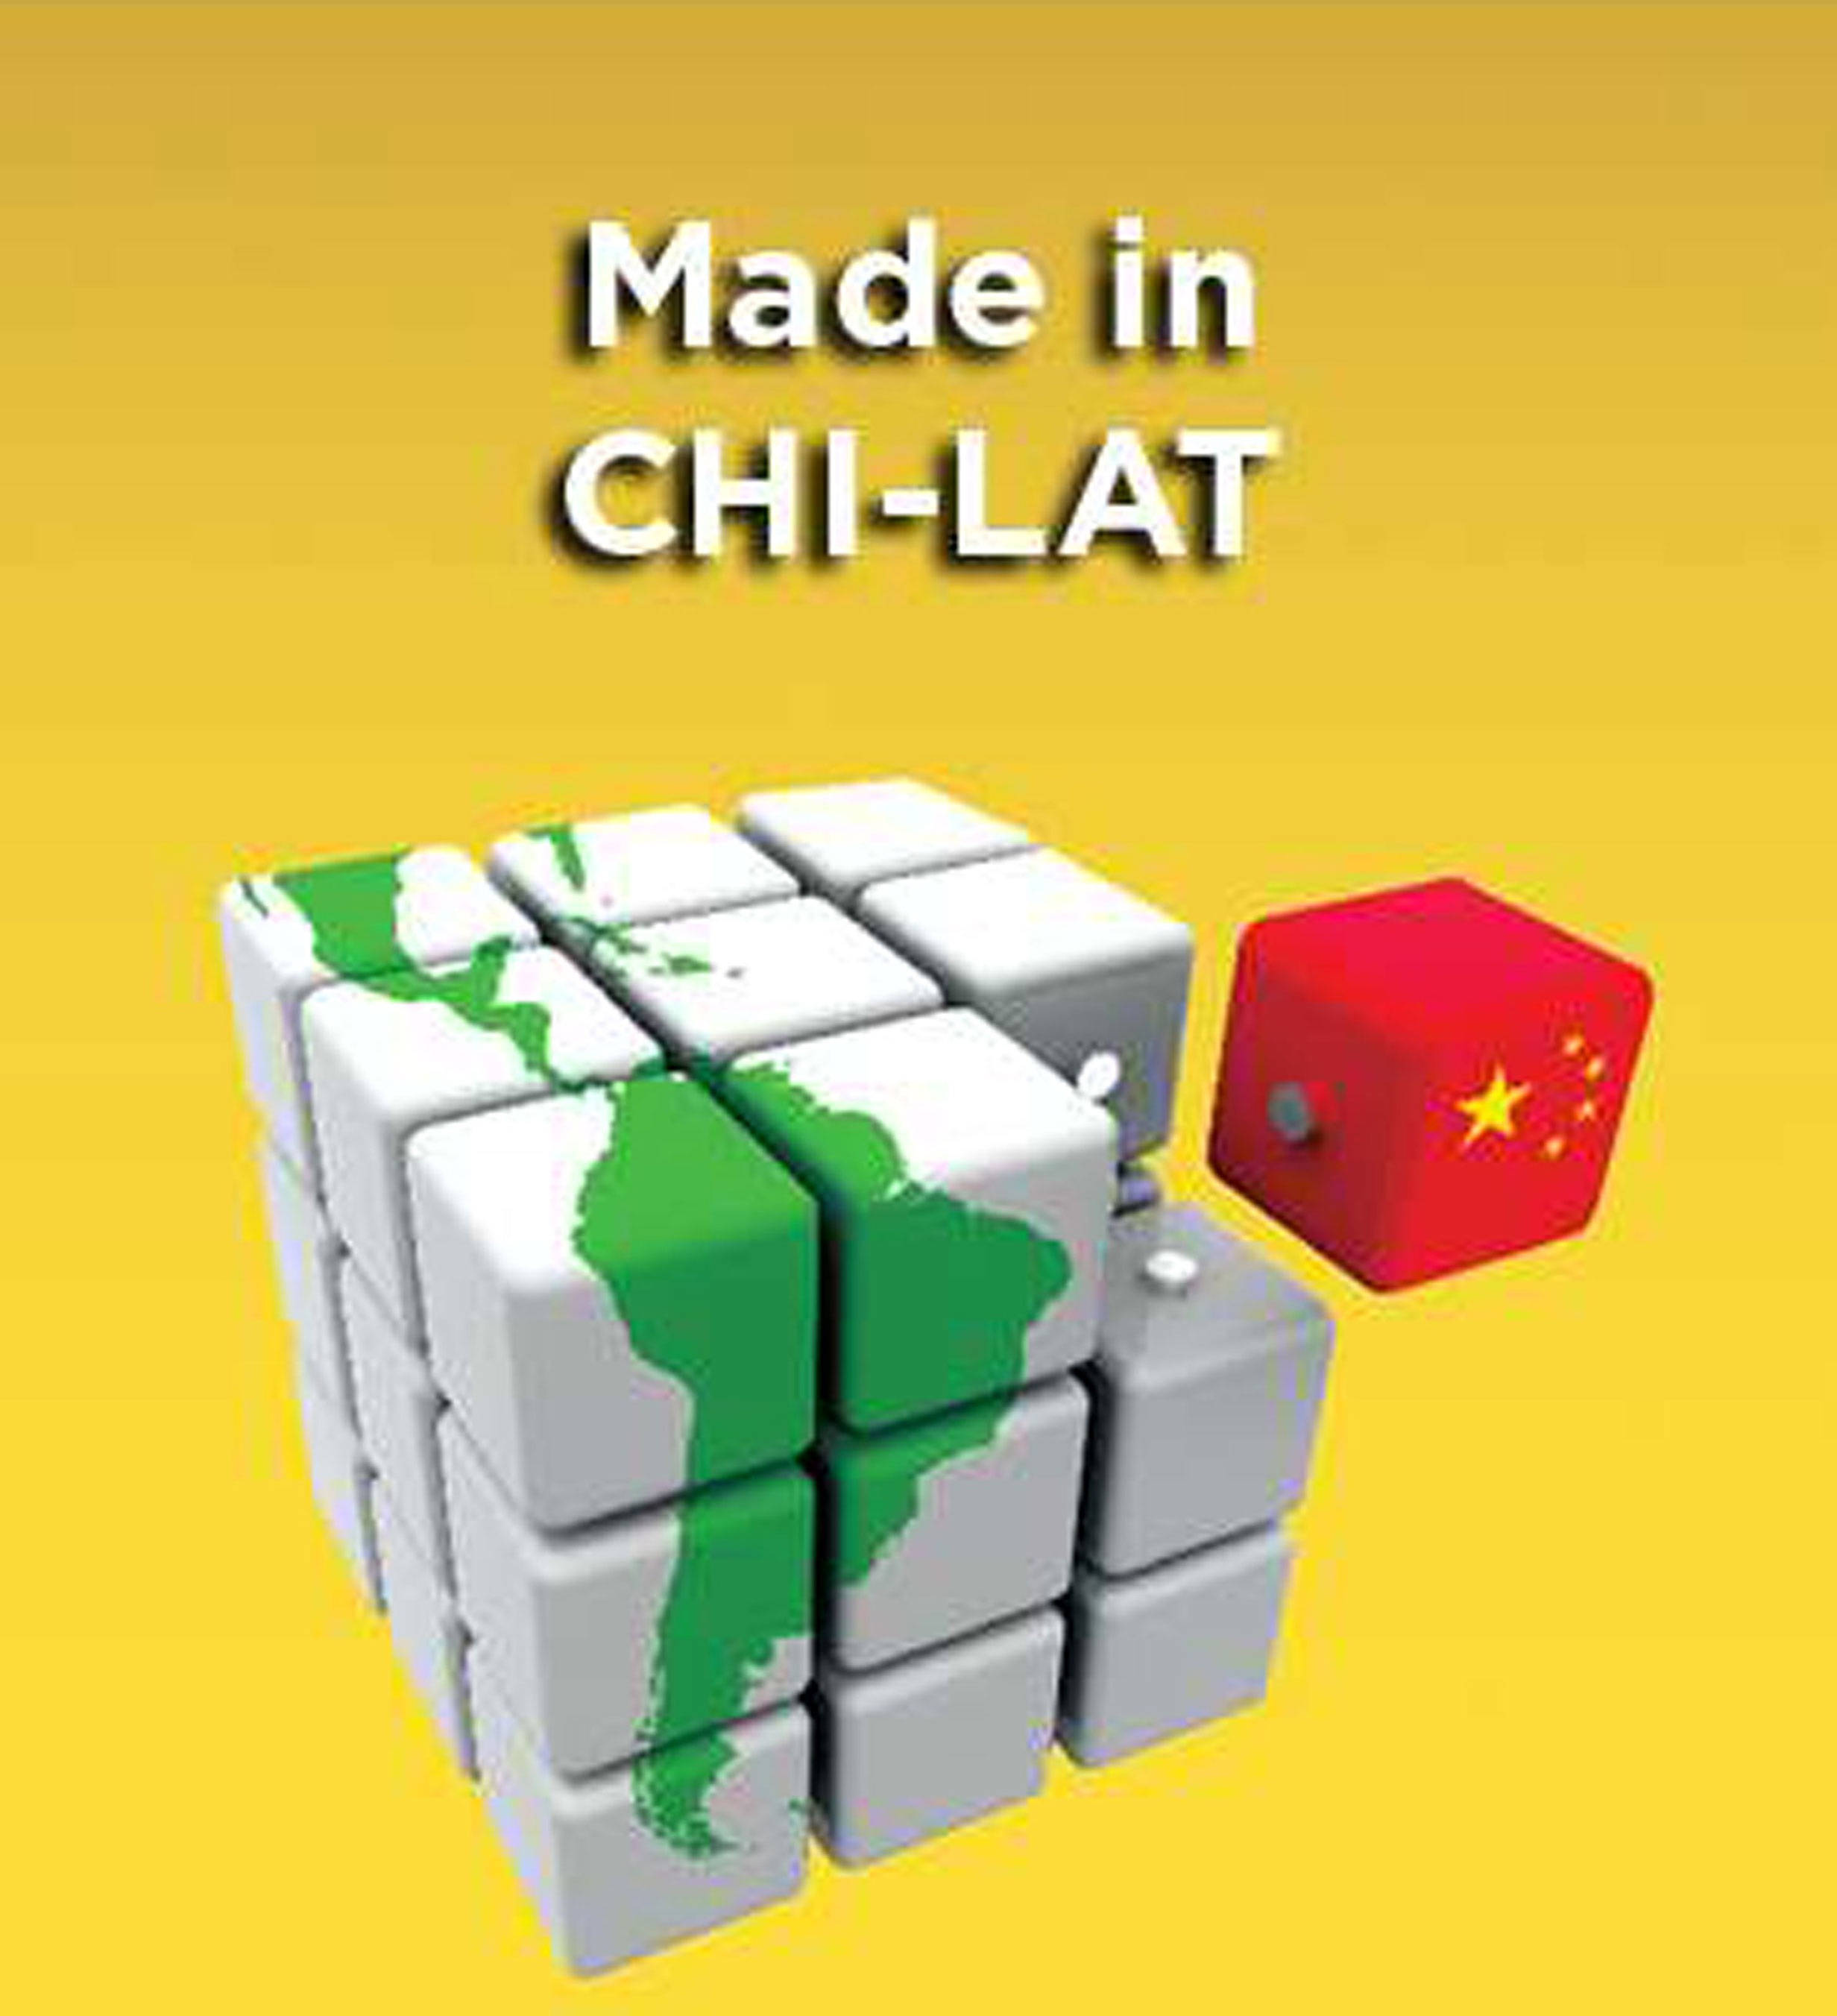 Made in CHI-LAT